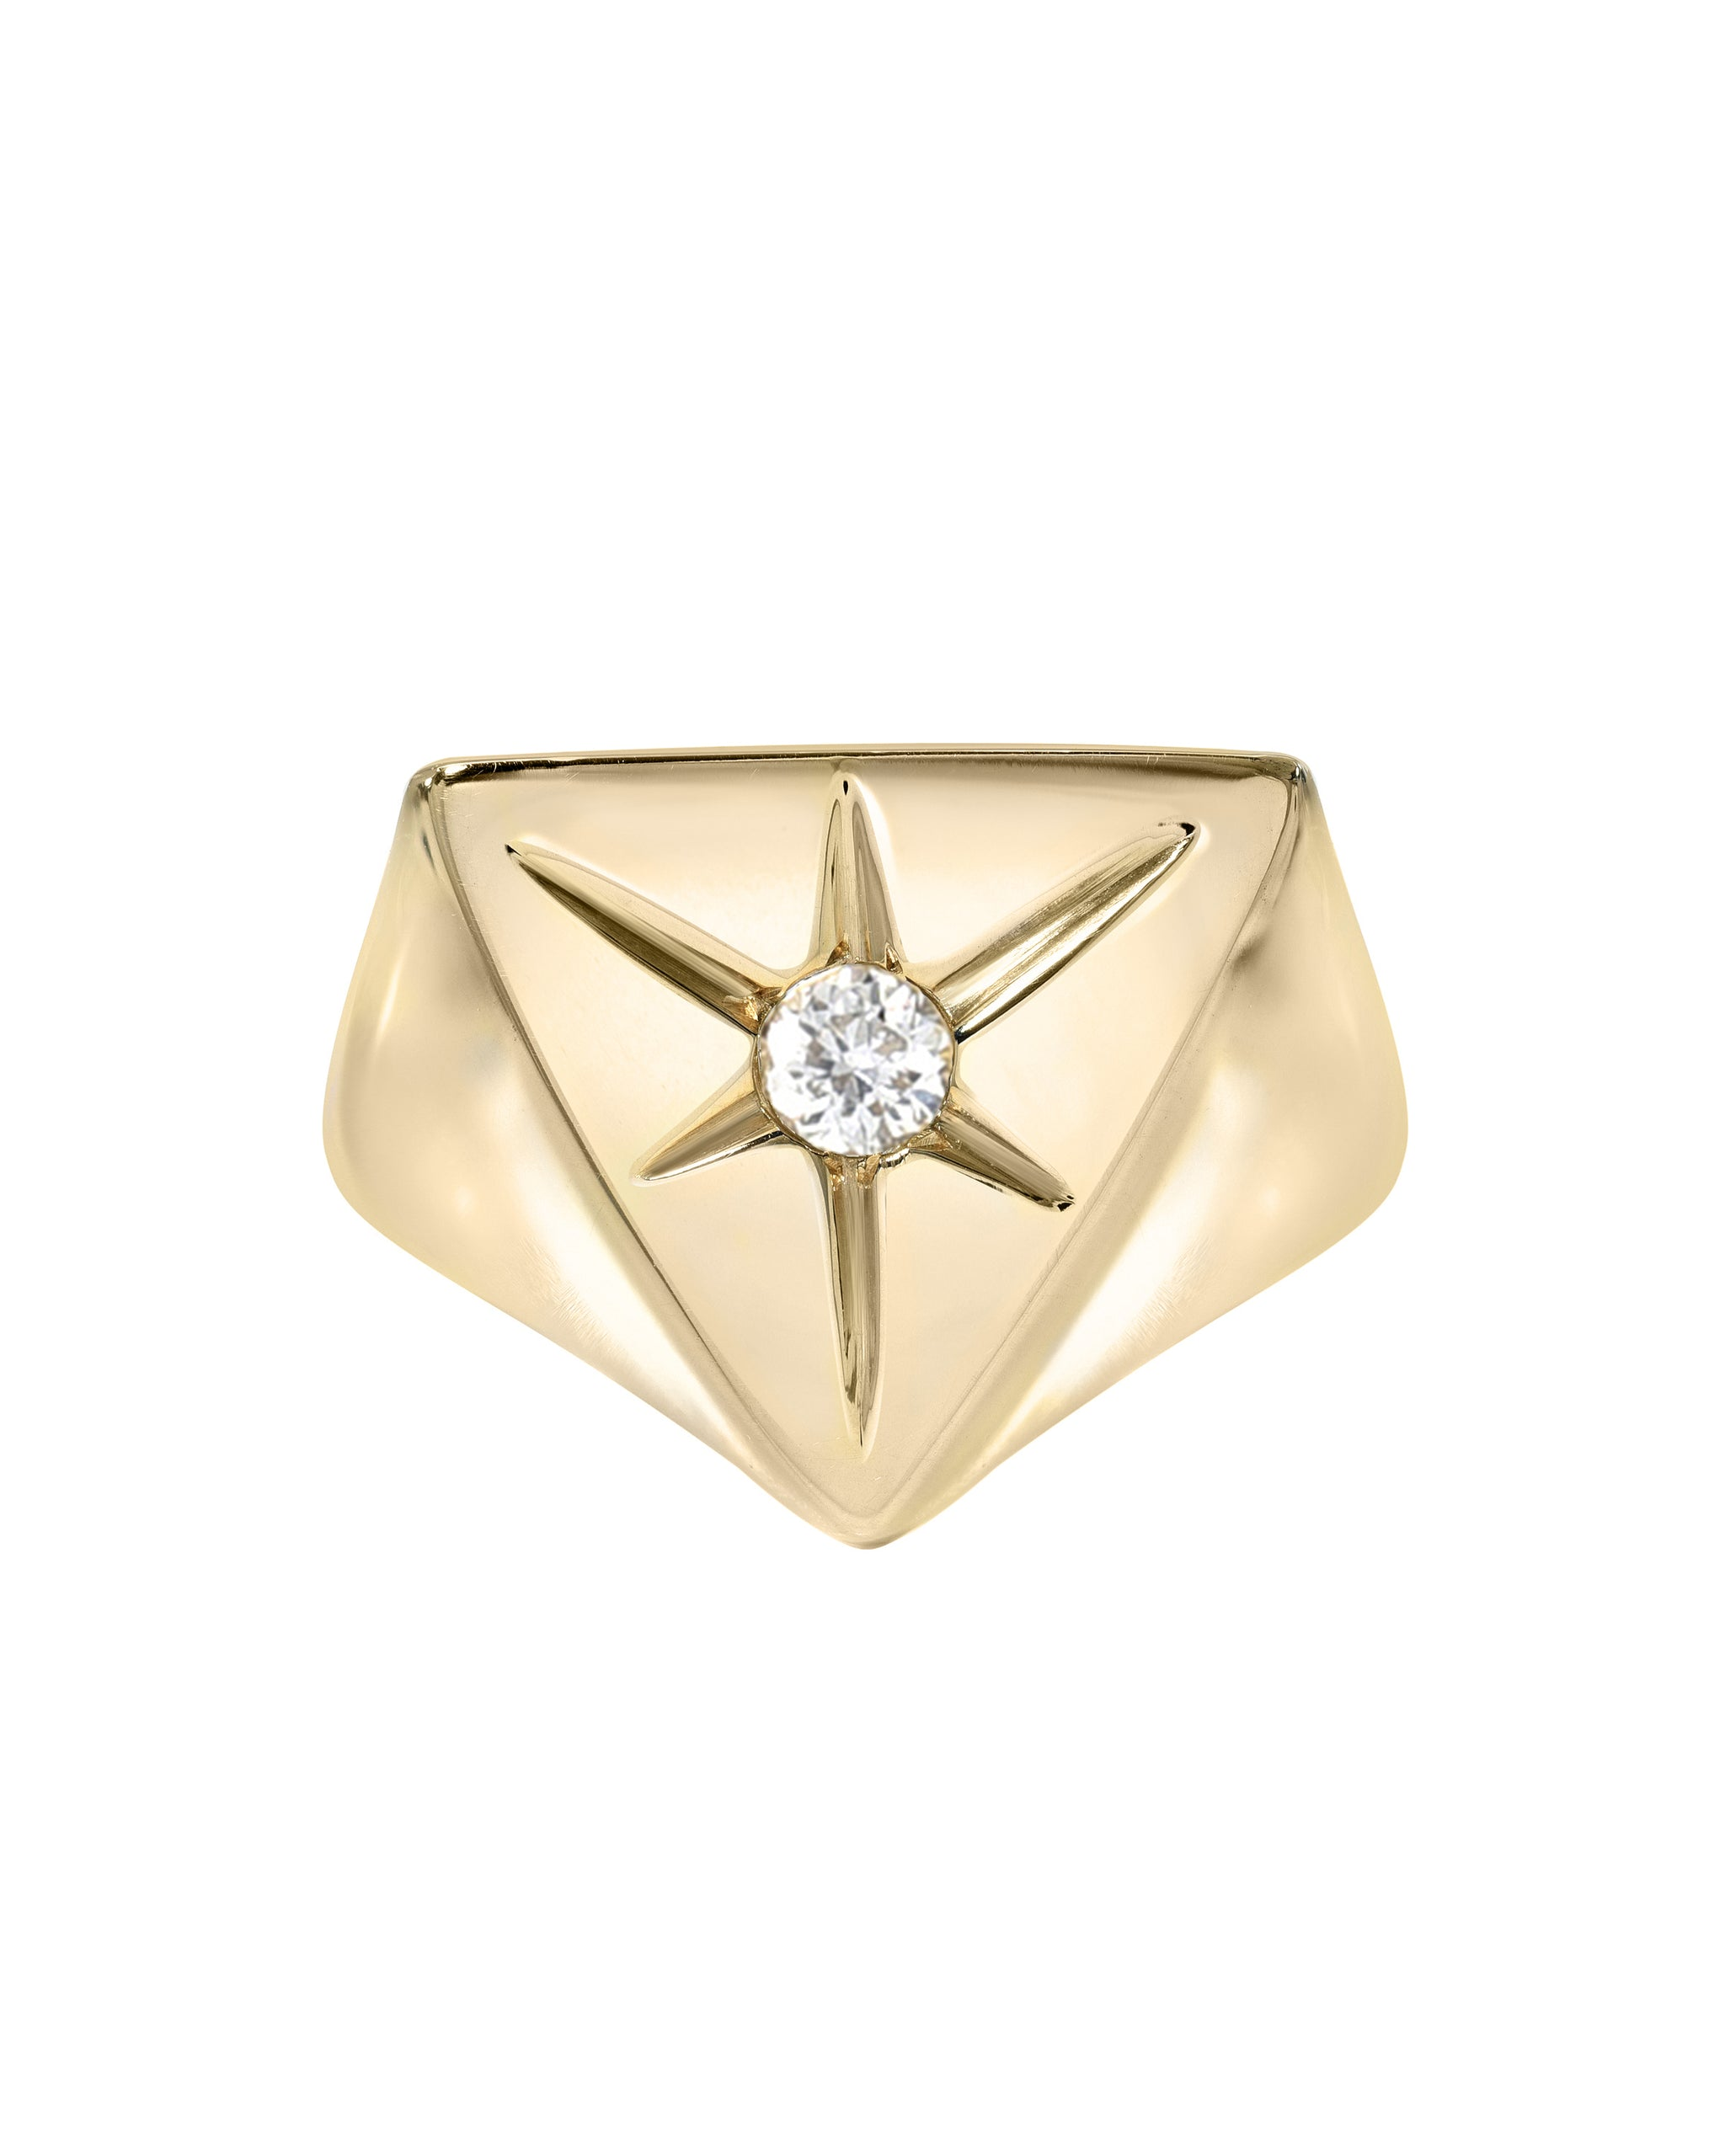 In the Stars Ring, White Topaz & Gold Vermeil pyramid signet ring, handmade by Turquoise + Tobacco in Los Angeles, California